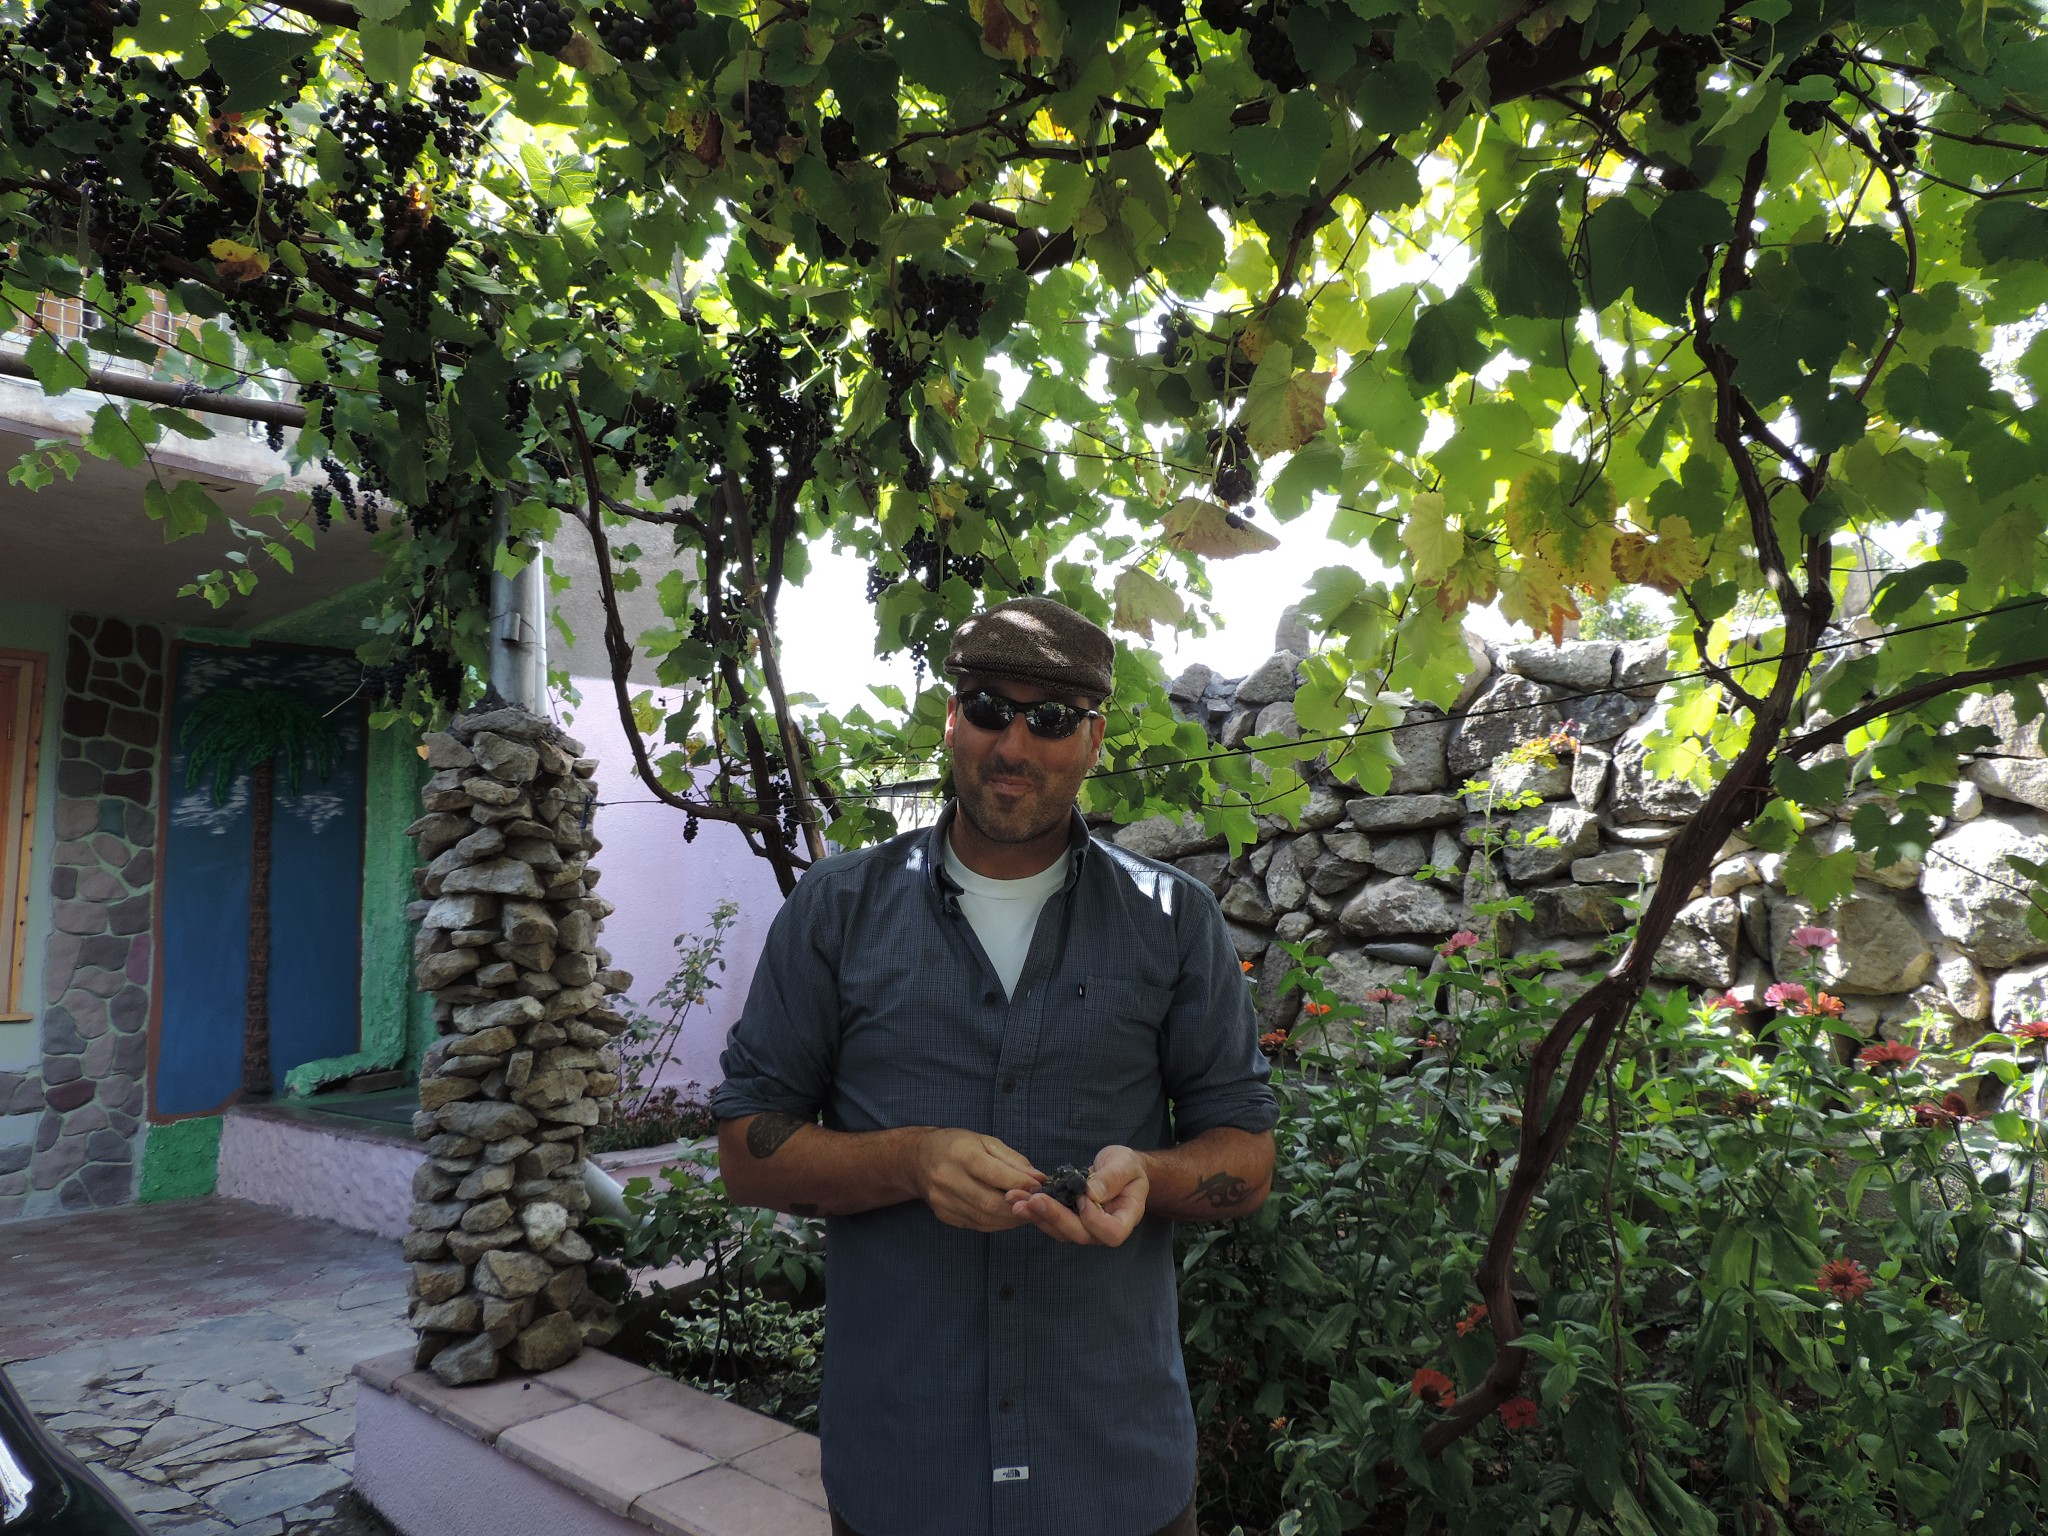 Jason eating grapes right off the vines at our guest house stay